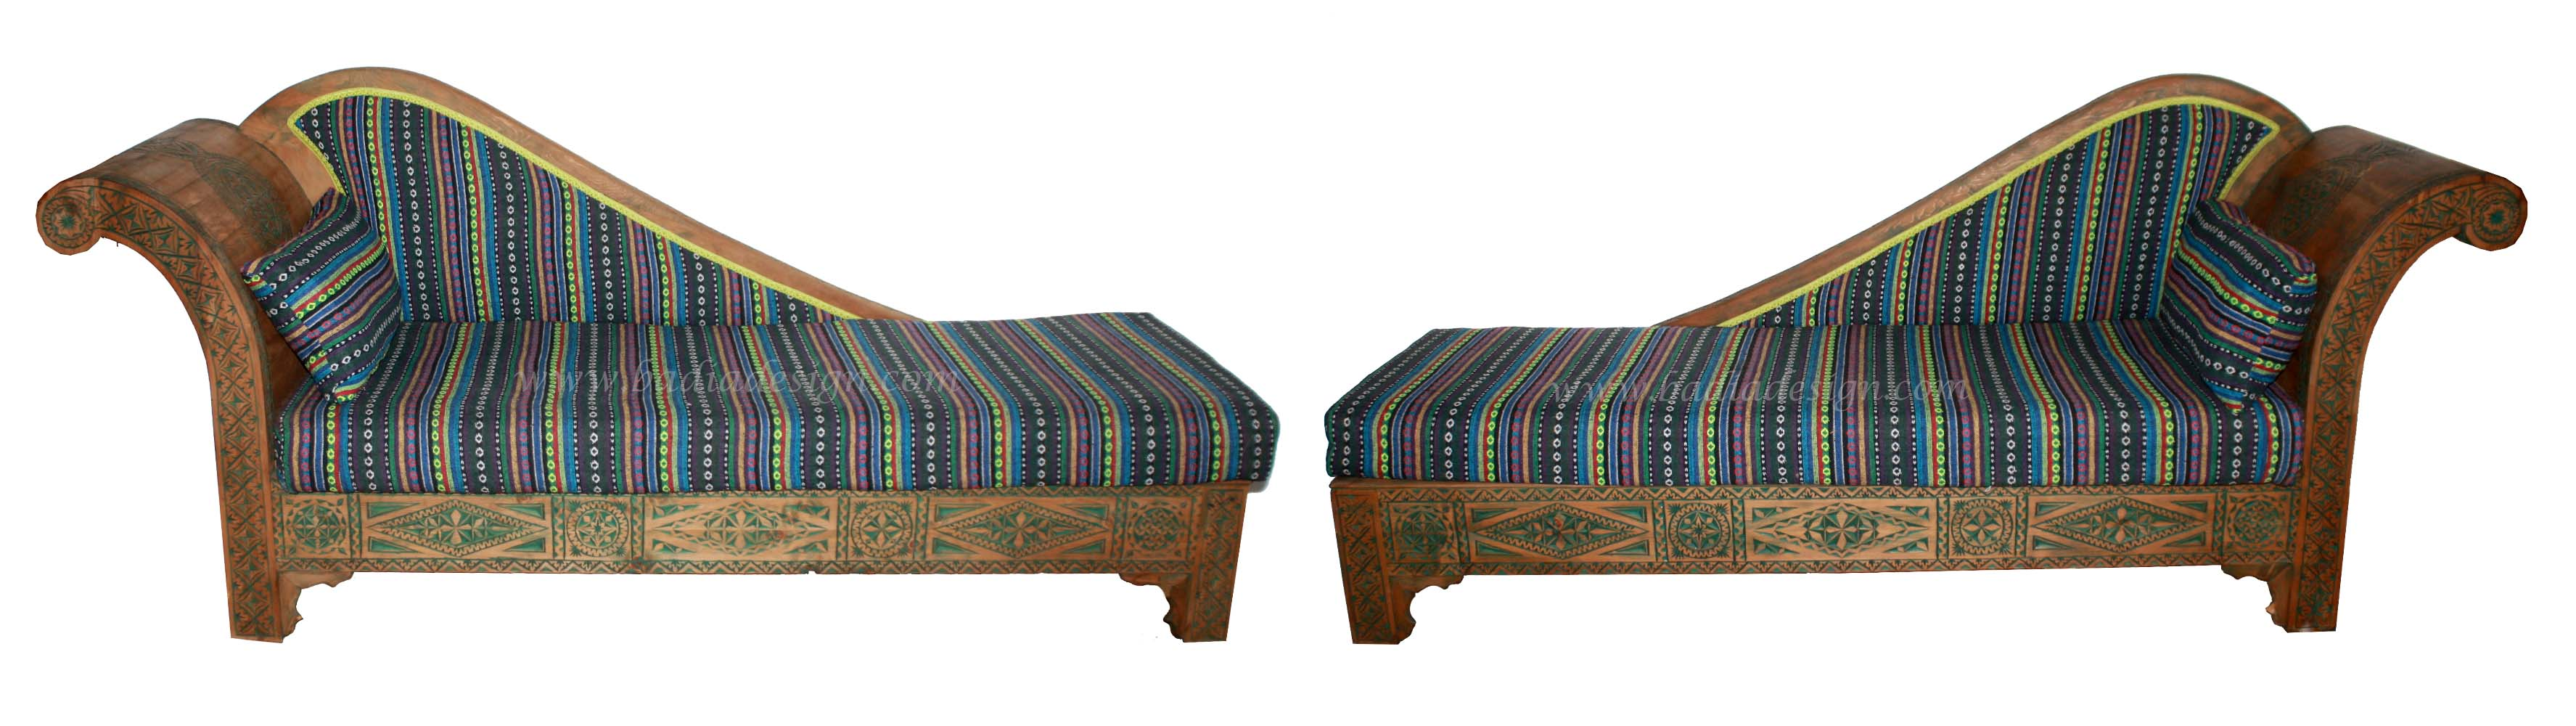 moroccan-wooden-bench-cw-b003.jpg